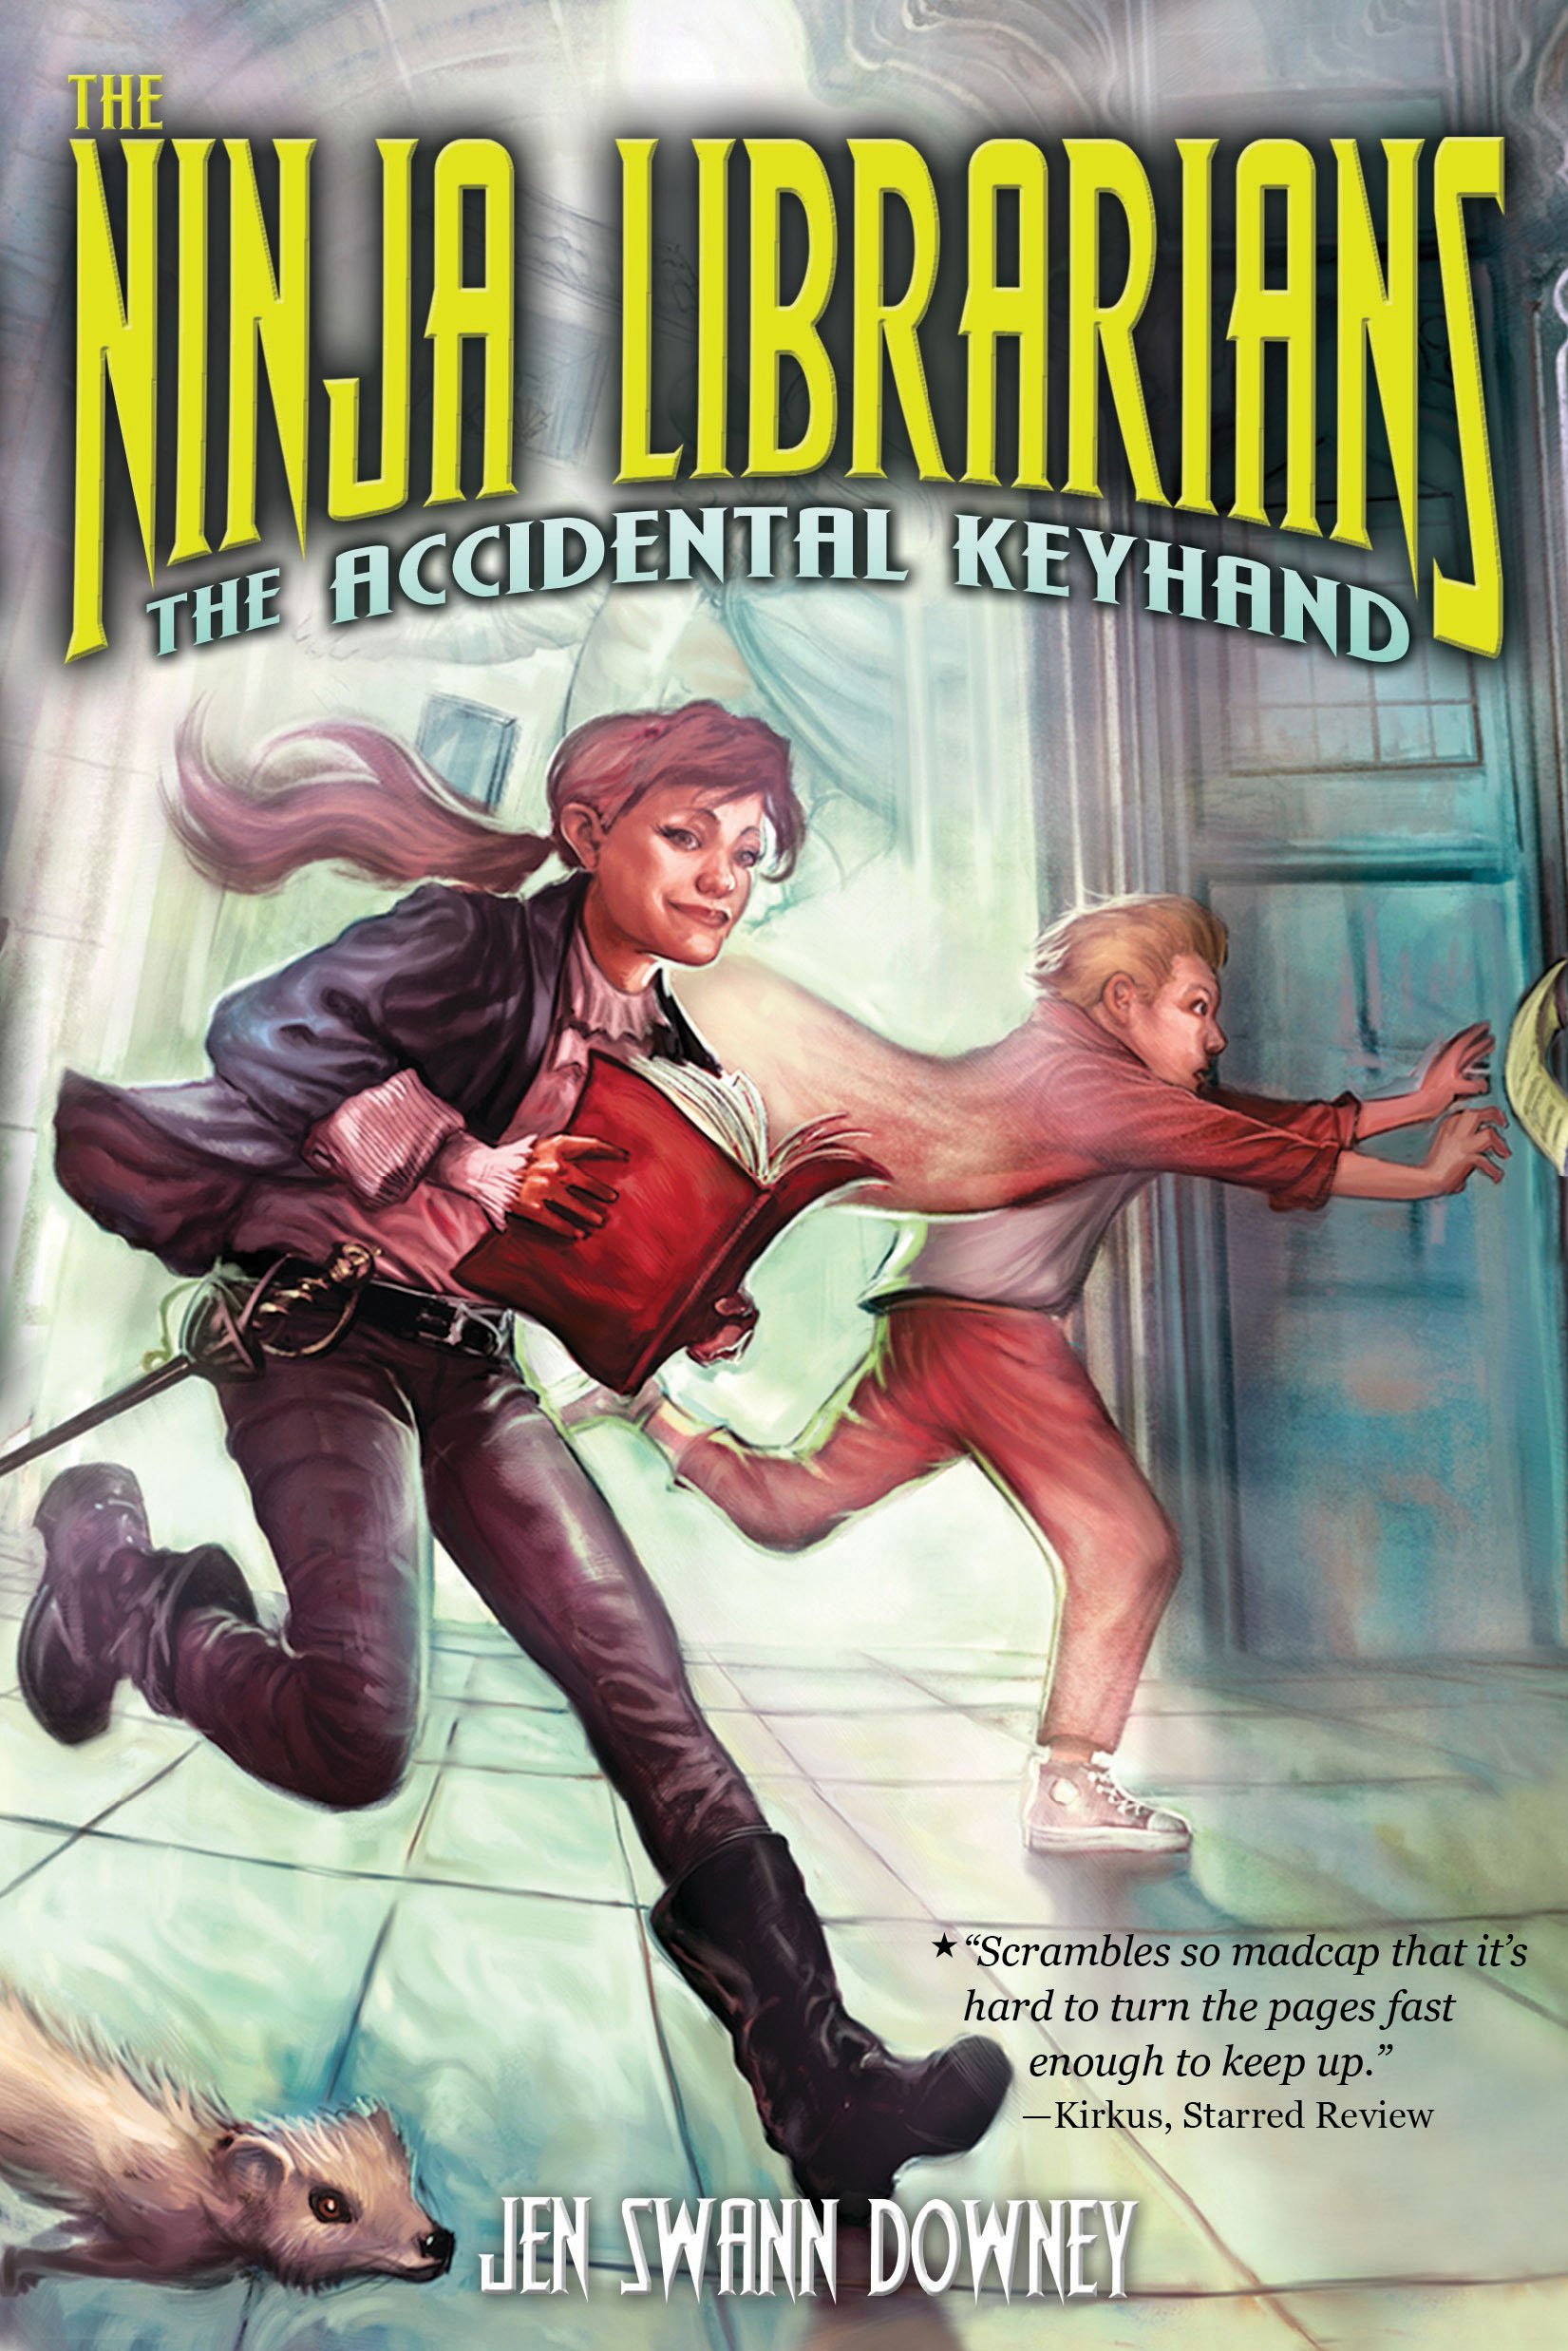 The Ninja Librarians book cover